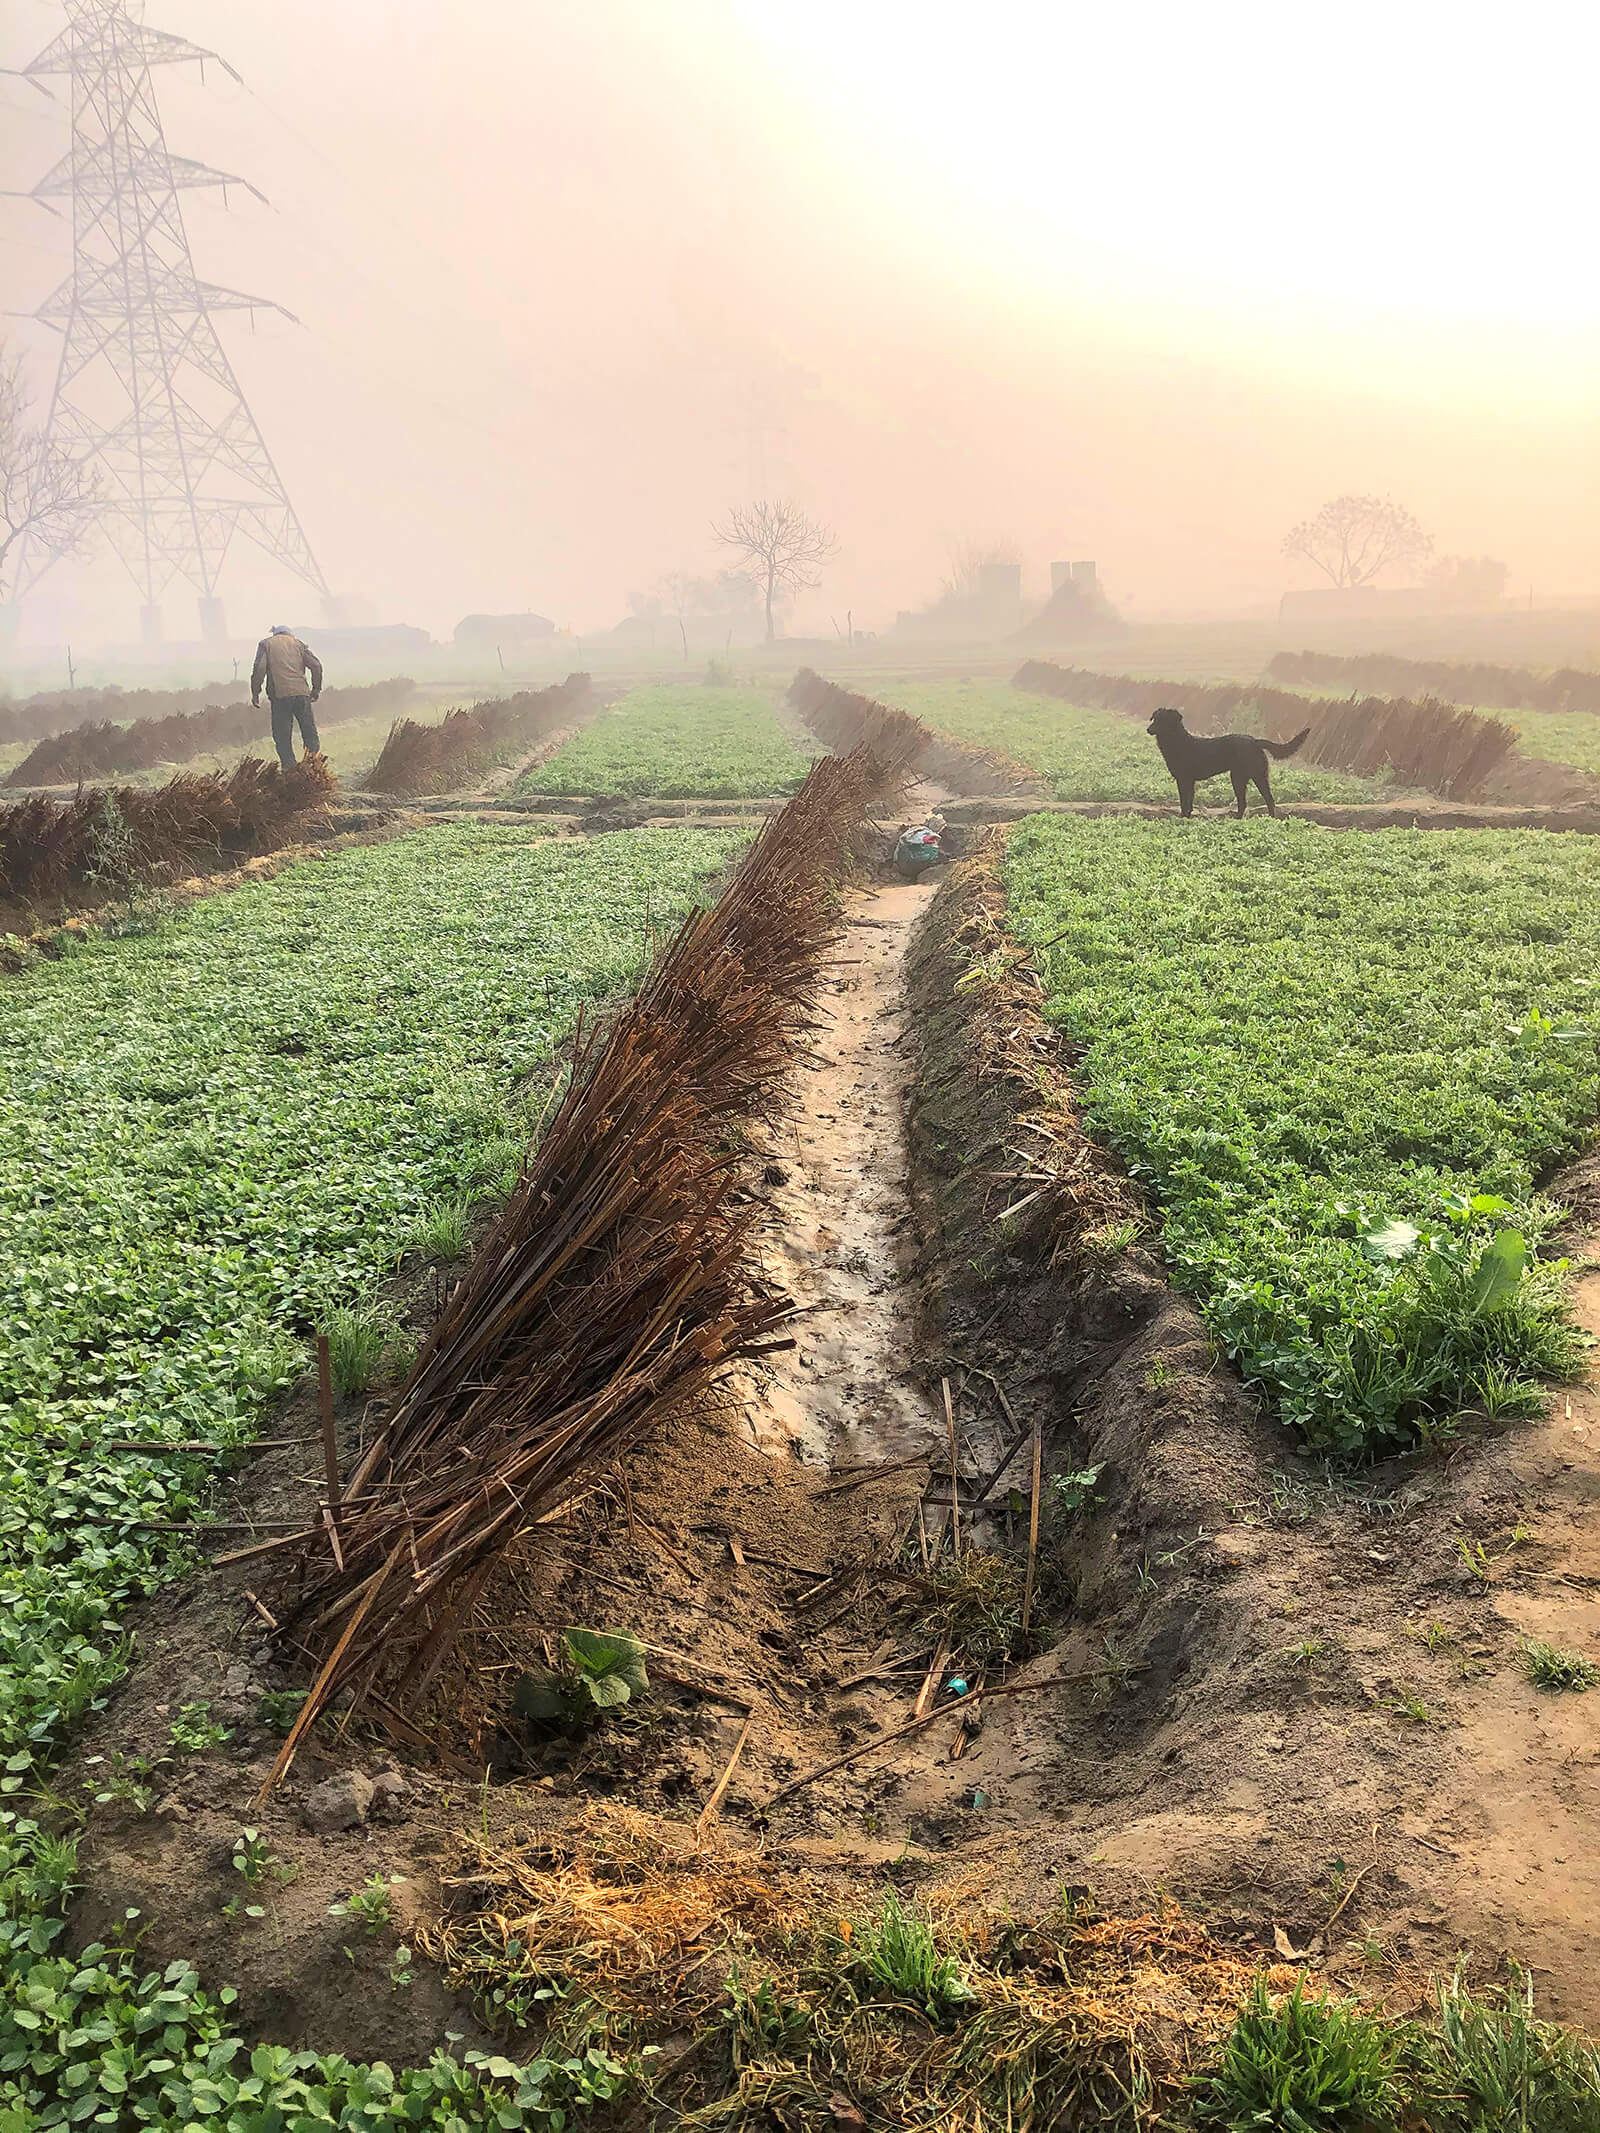 Since the water from River Yamuna is unfit for human use, the farmers have been innovatively using groundwater and traditional dew catchers for irrigating fields | Who does the land belong to? The land in the heart of Delhi | STIRworld